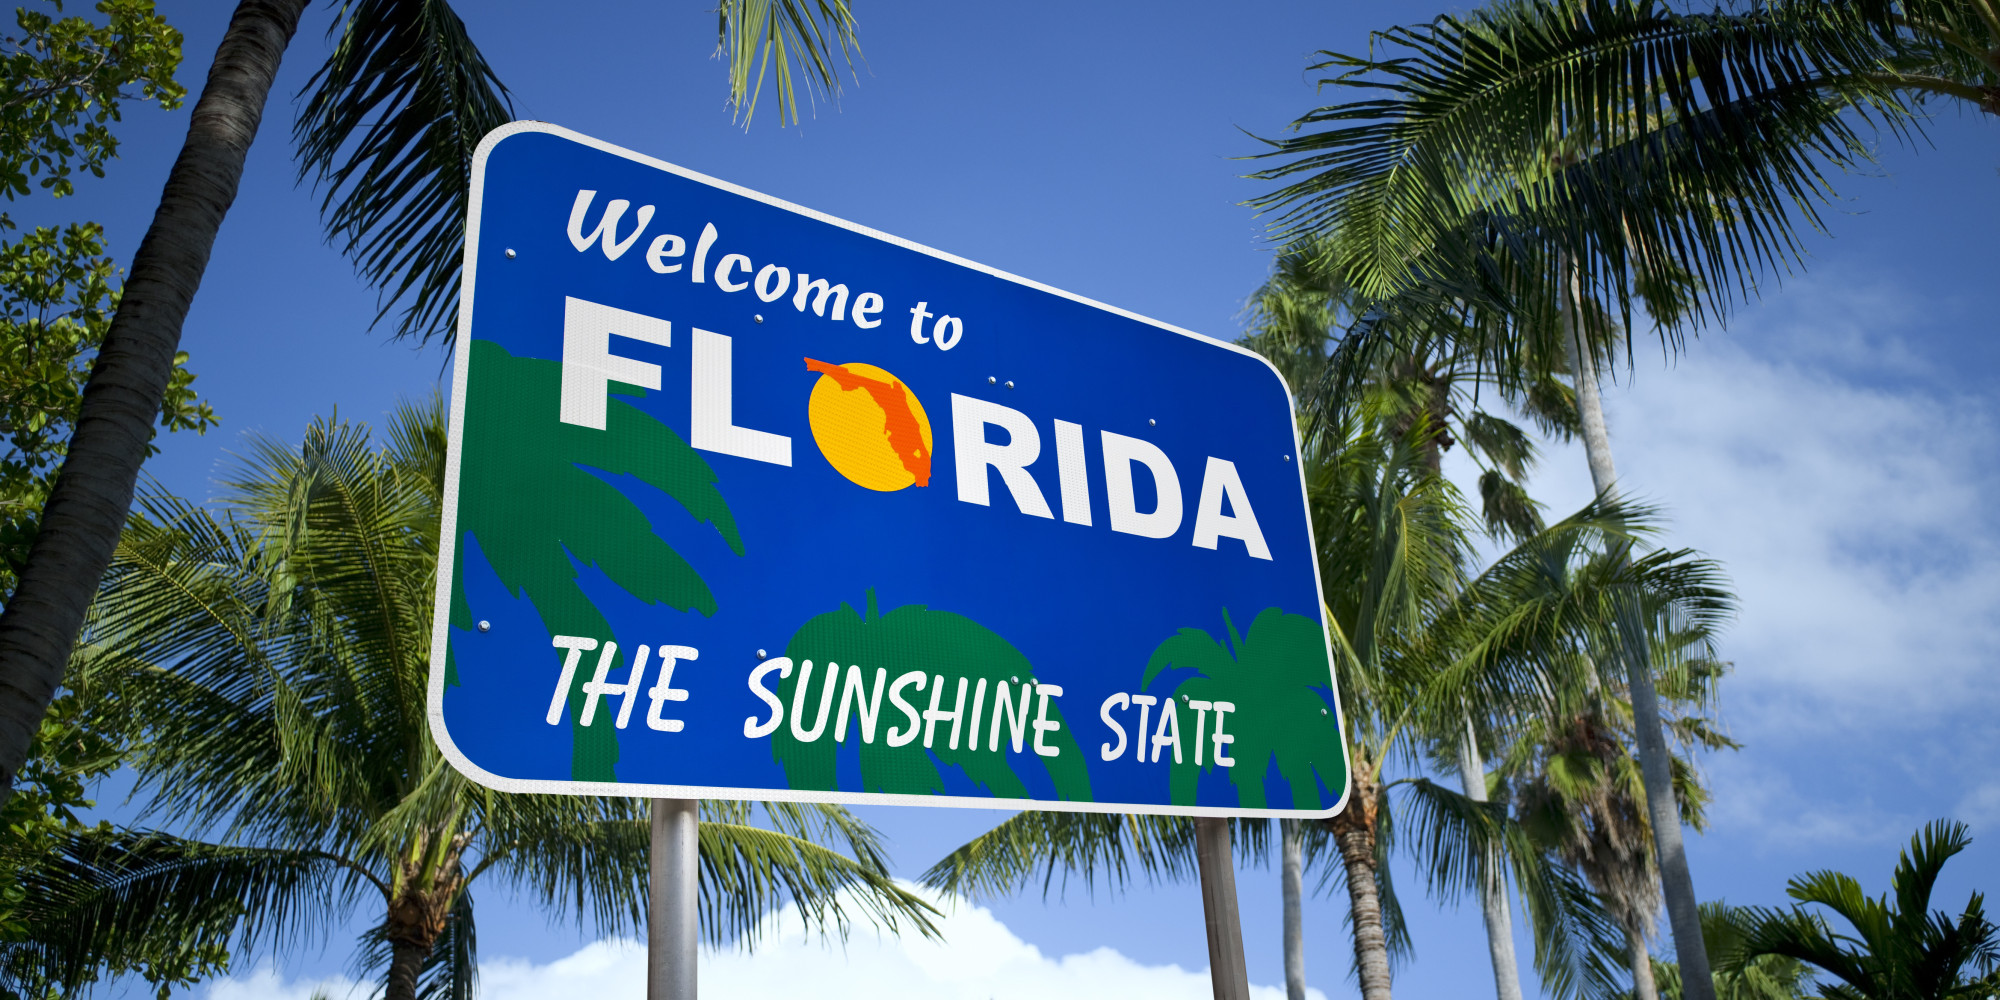 Trade Tensions Felt in Florida - Professor Michael Czinkota